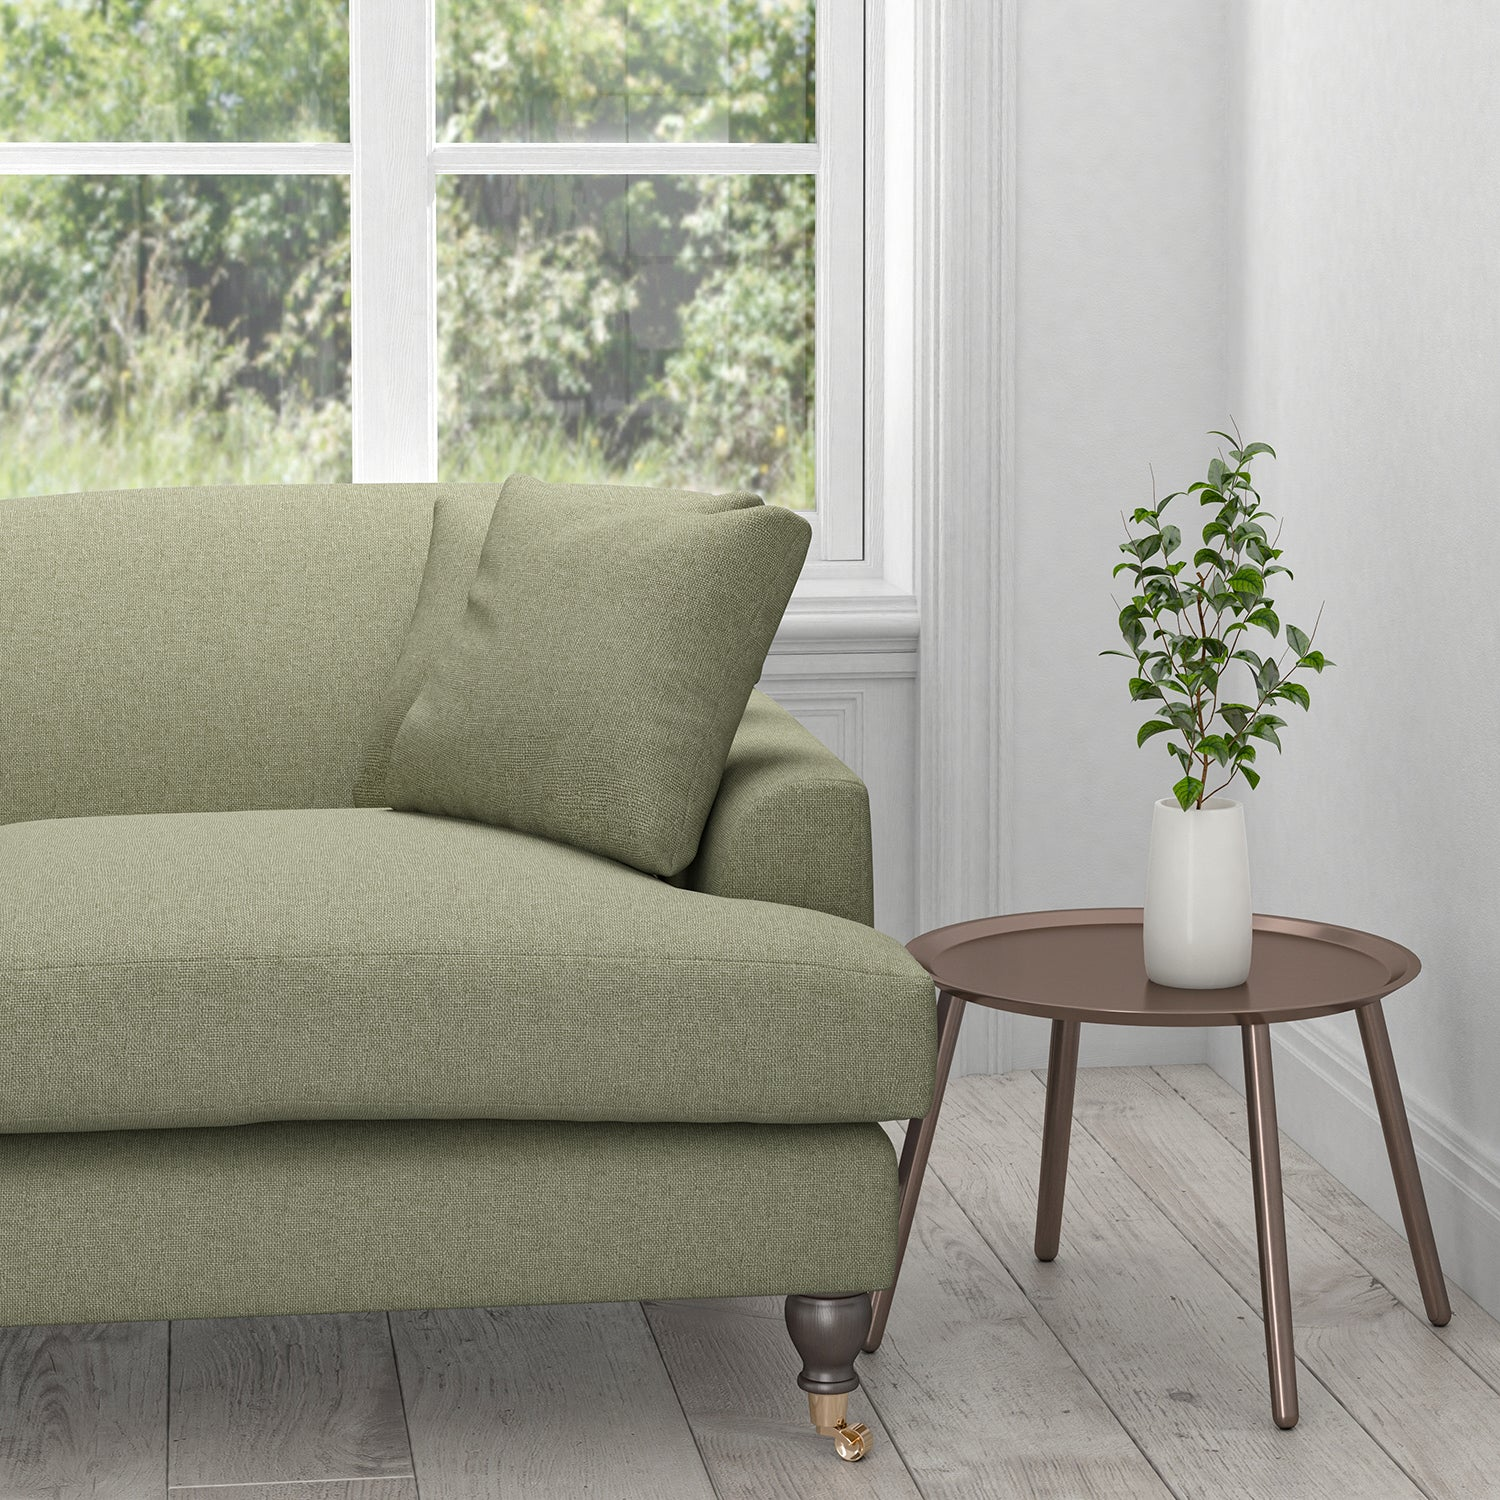 Sofa in a plain grey cotton washable upholstery fabric